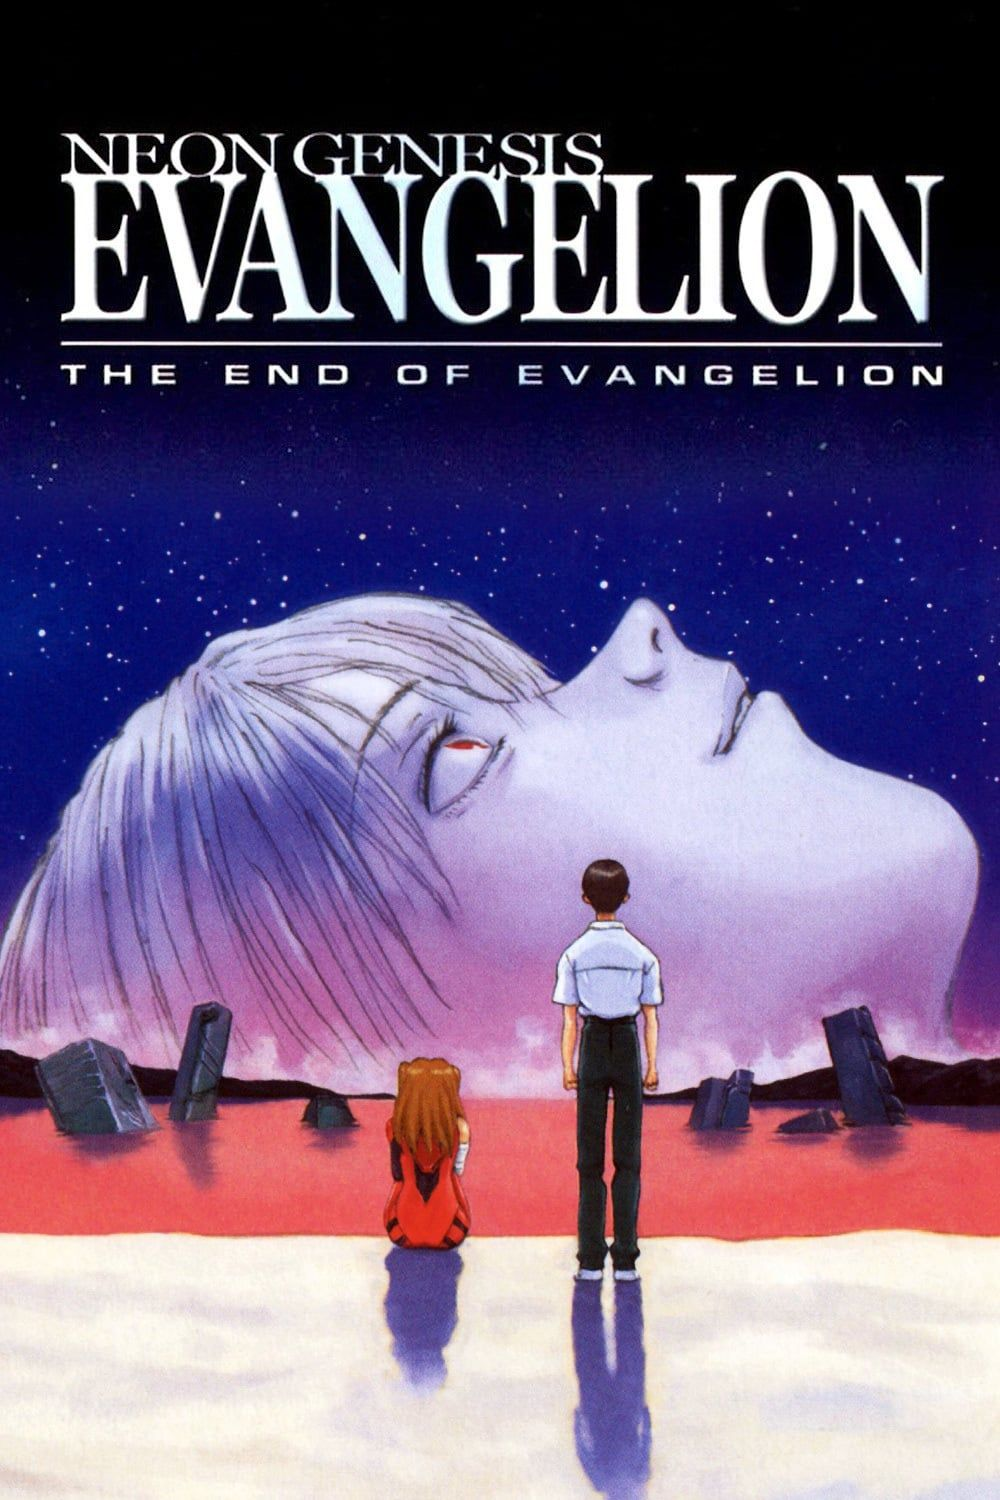 FREE DOWNLOAD] 【HD】 Neon Genesis Evangelion: The End of Evangelion (1997) 【FULL MOVIE】 #DOWNLOAD #WATCH #FULL #MOVIE #ONLINE #S… | Animes wallpapers, Anime, Poster